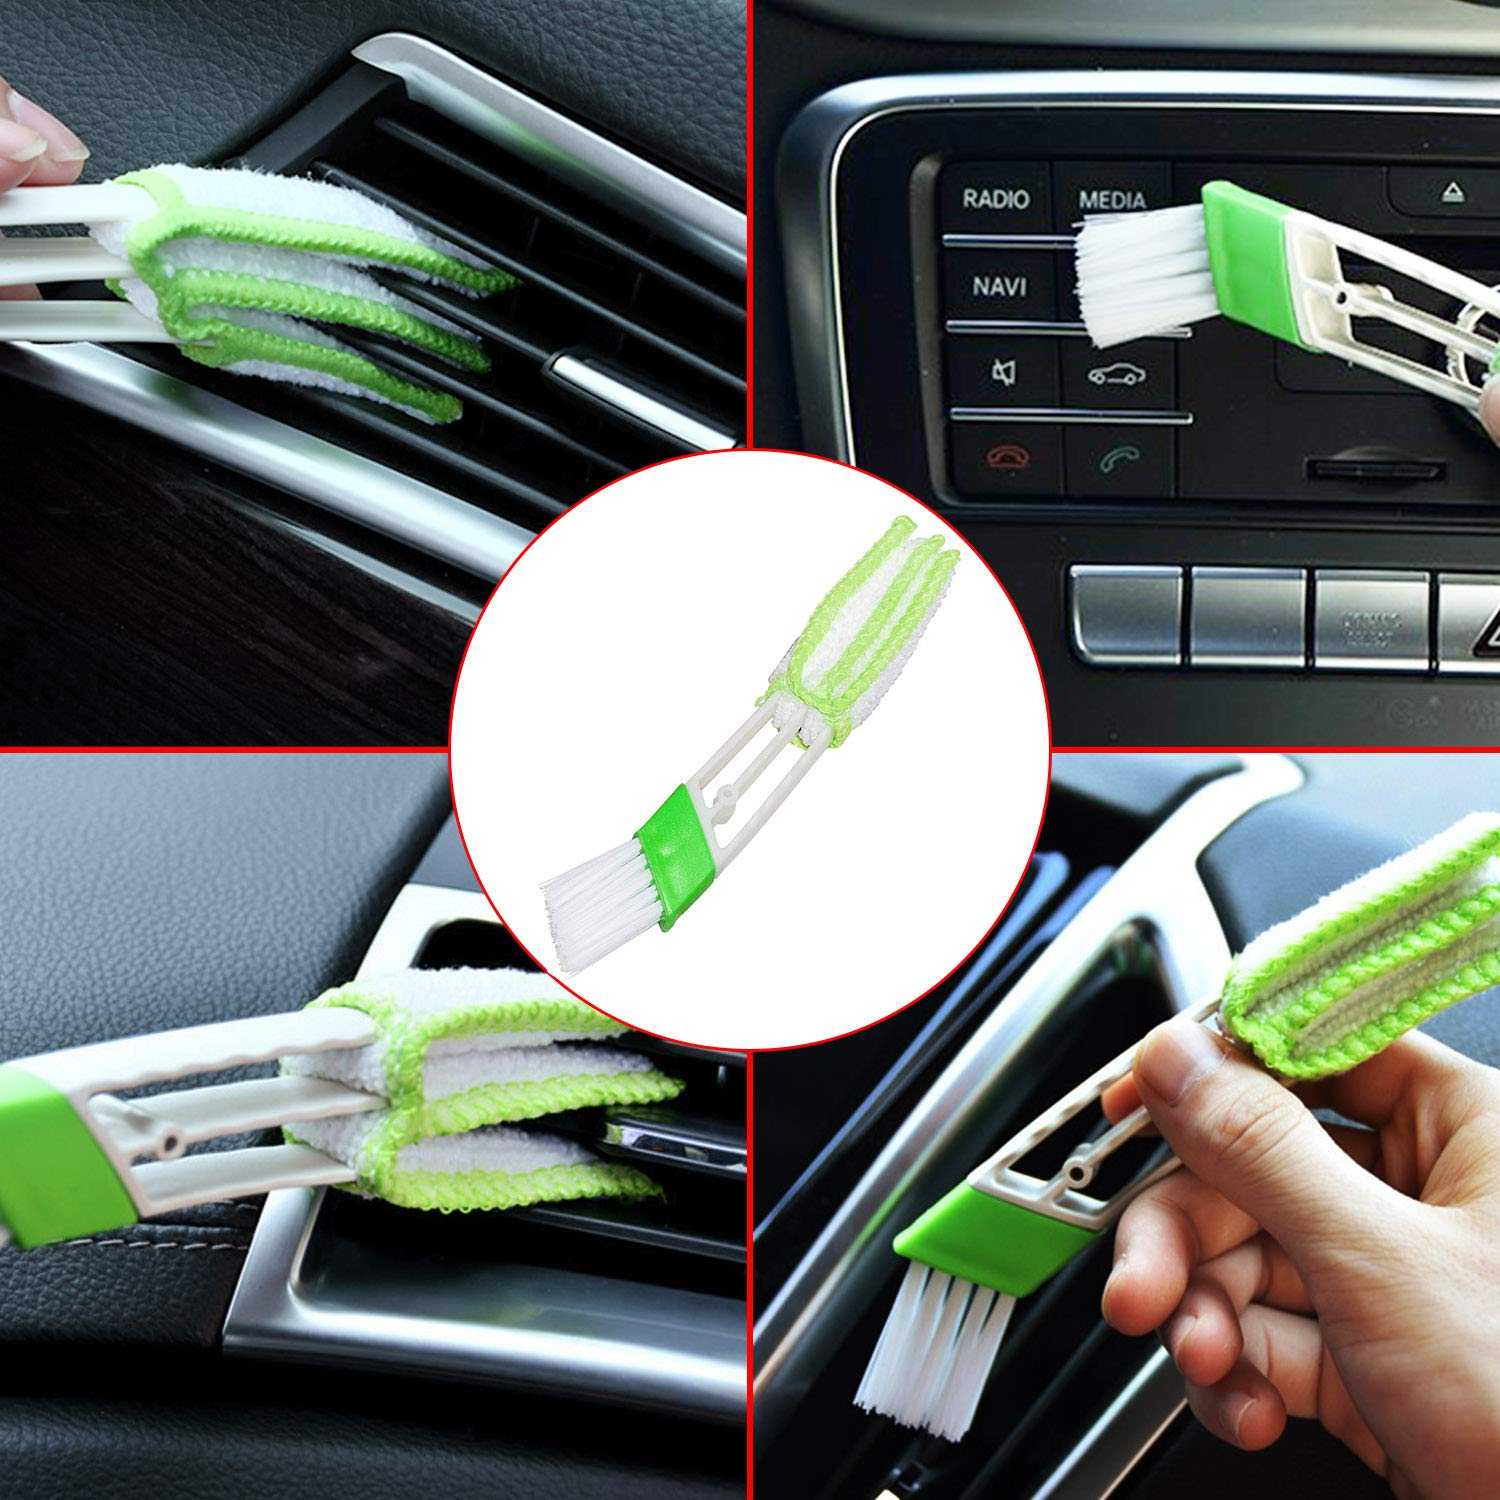 Auto Detail Brush Set with a Car Wash Mitt and 2 pack Car Air Vent Duster for Car Motorcycle Automotive Cleaning Wheels Dashboard Manfiter Detailing Brush Set Interior Exterior Air Vents Leather